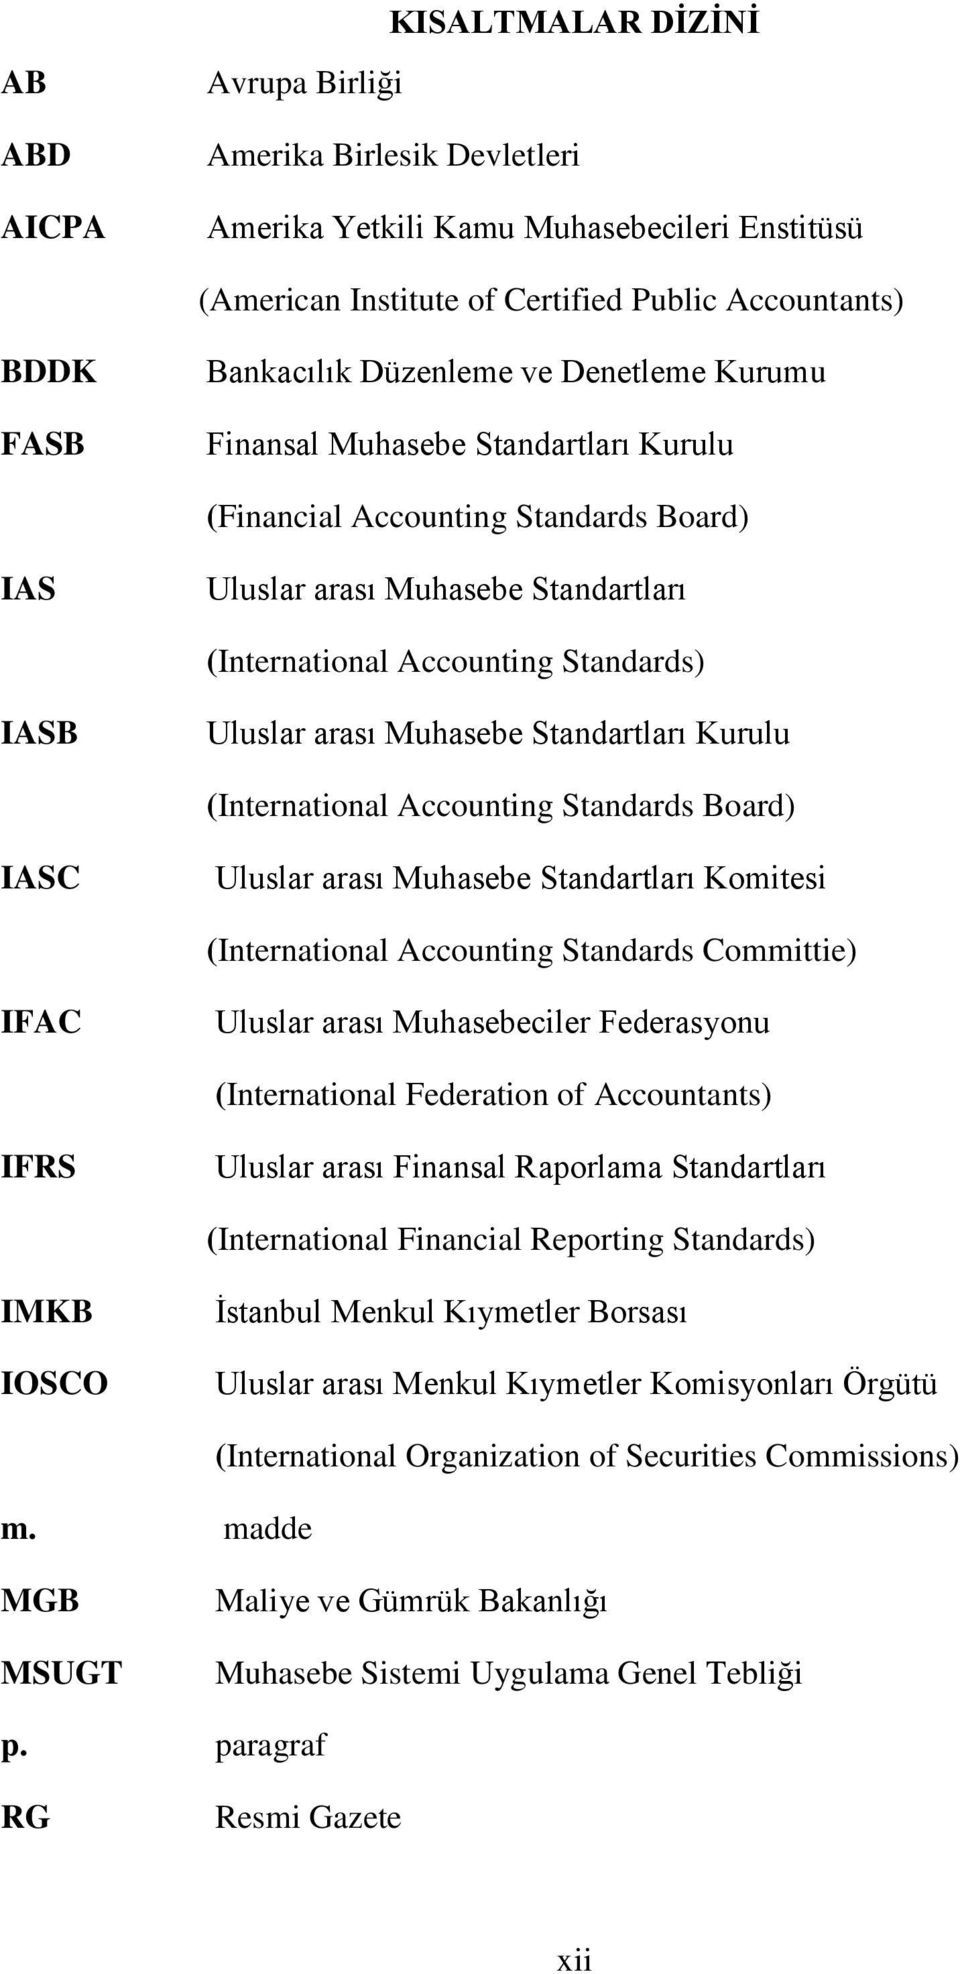 arası Muhasebe Standartları Kurulu (International Accounting Standards Board) IASC Uluslar arası Muhasebe Standartları Komitesi (International Accounting Standards Committie) IFAC Uluslar arası